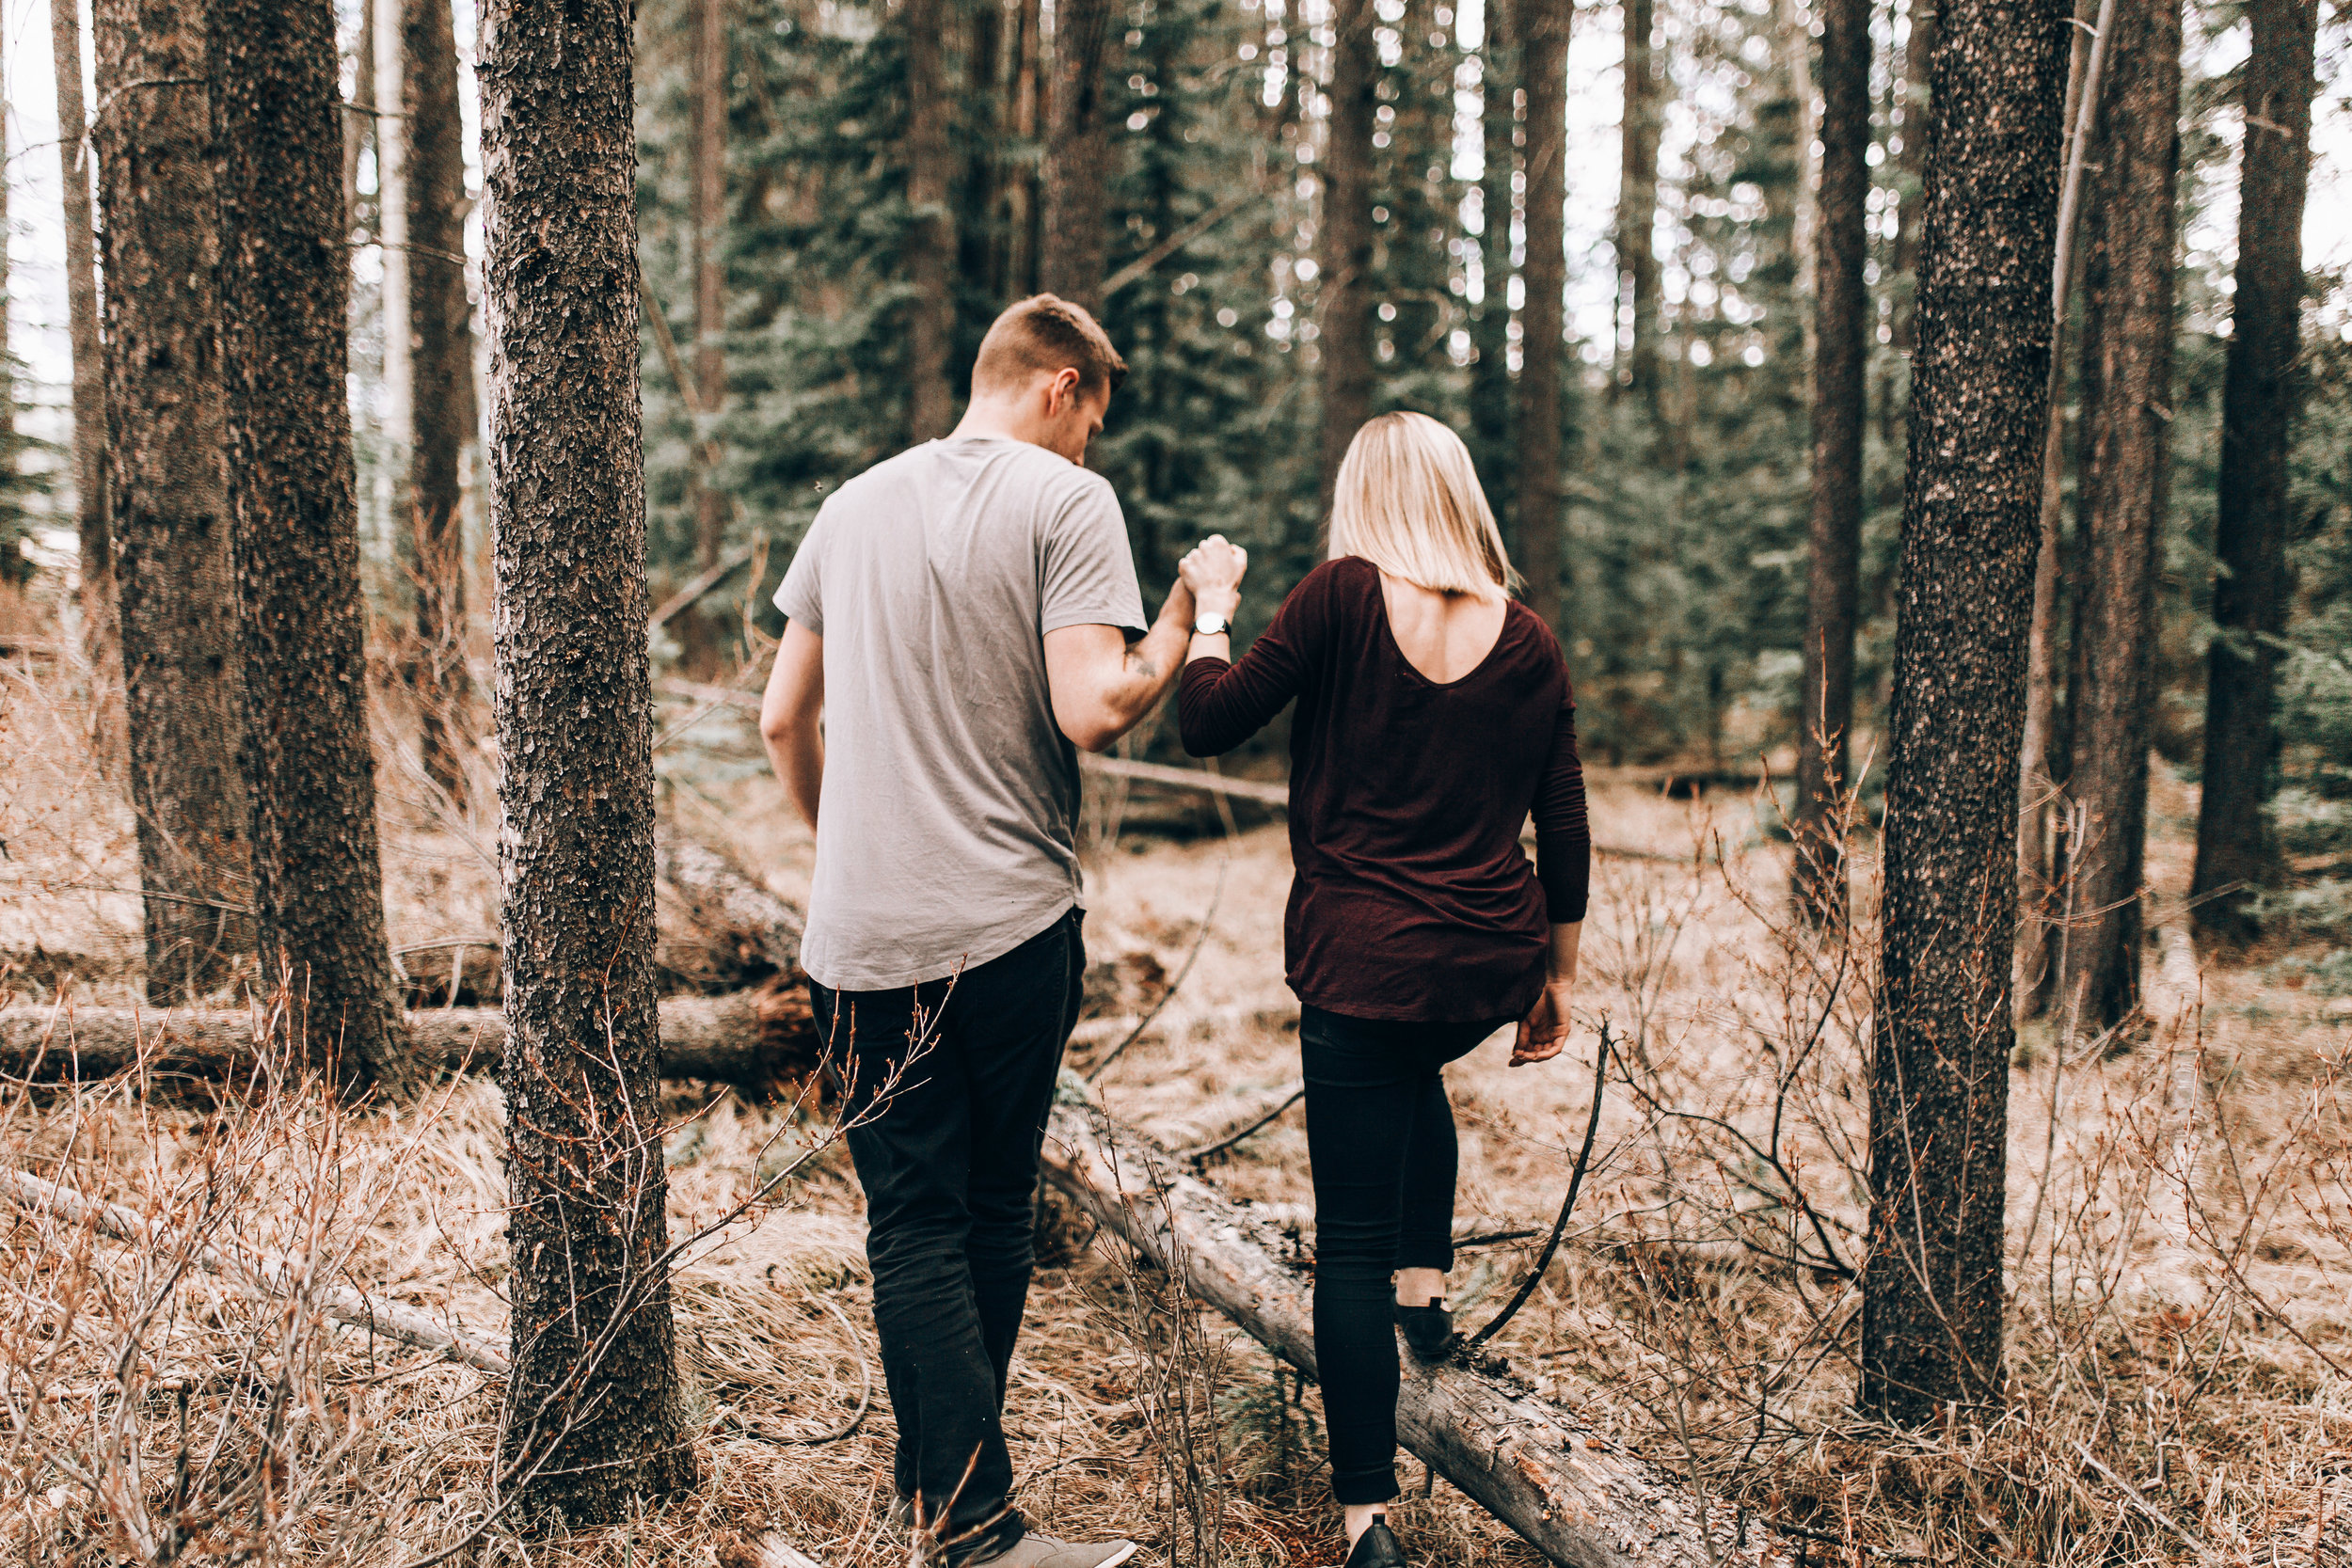 simpleperfectionsphotography.cullen+chelsey-25.jpg